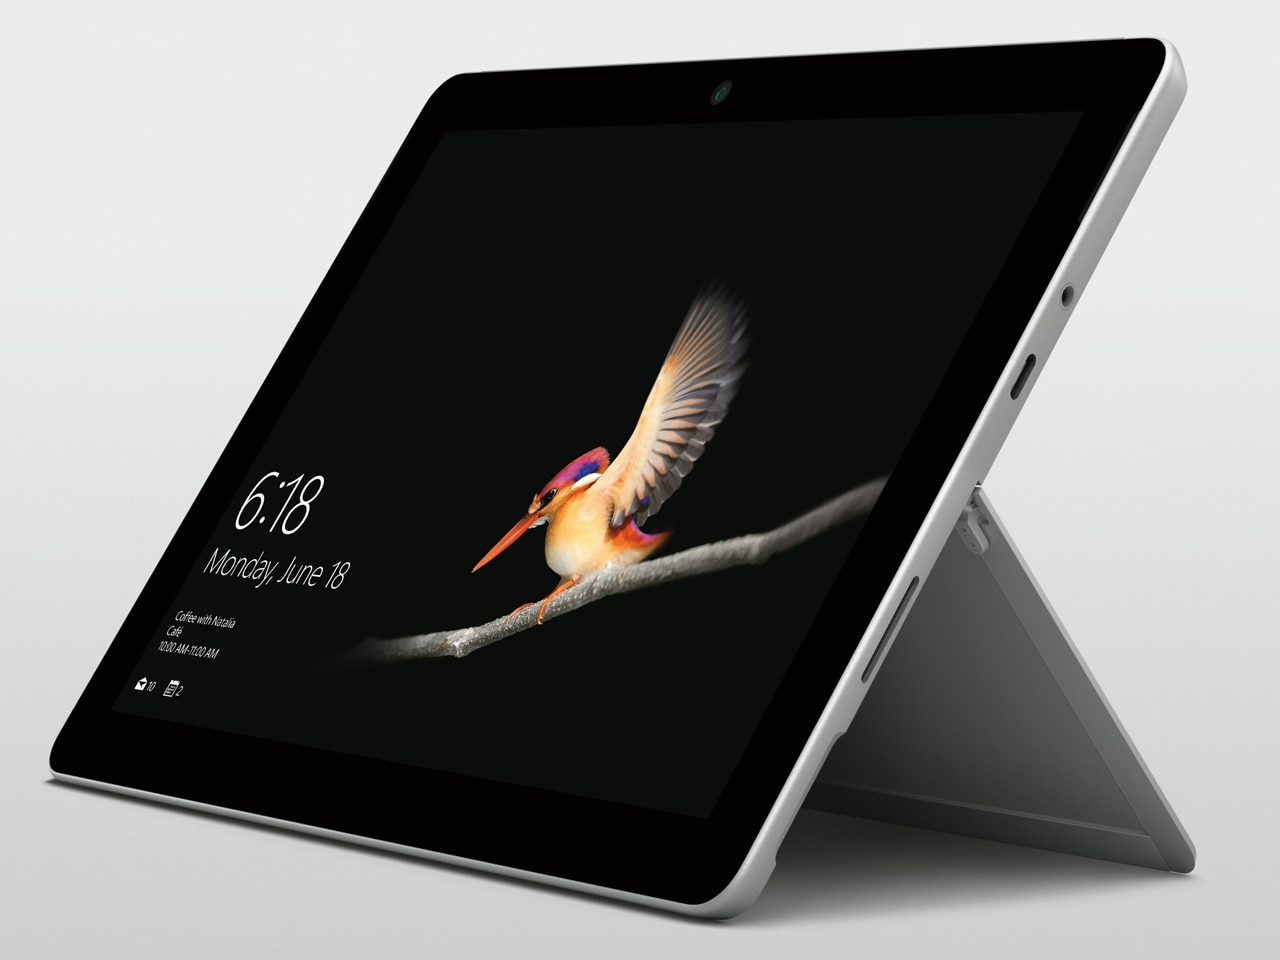 Surface Go MHN-00017 製品画像